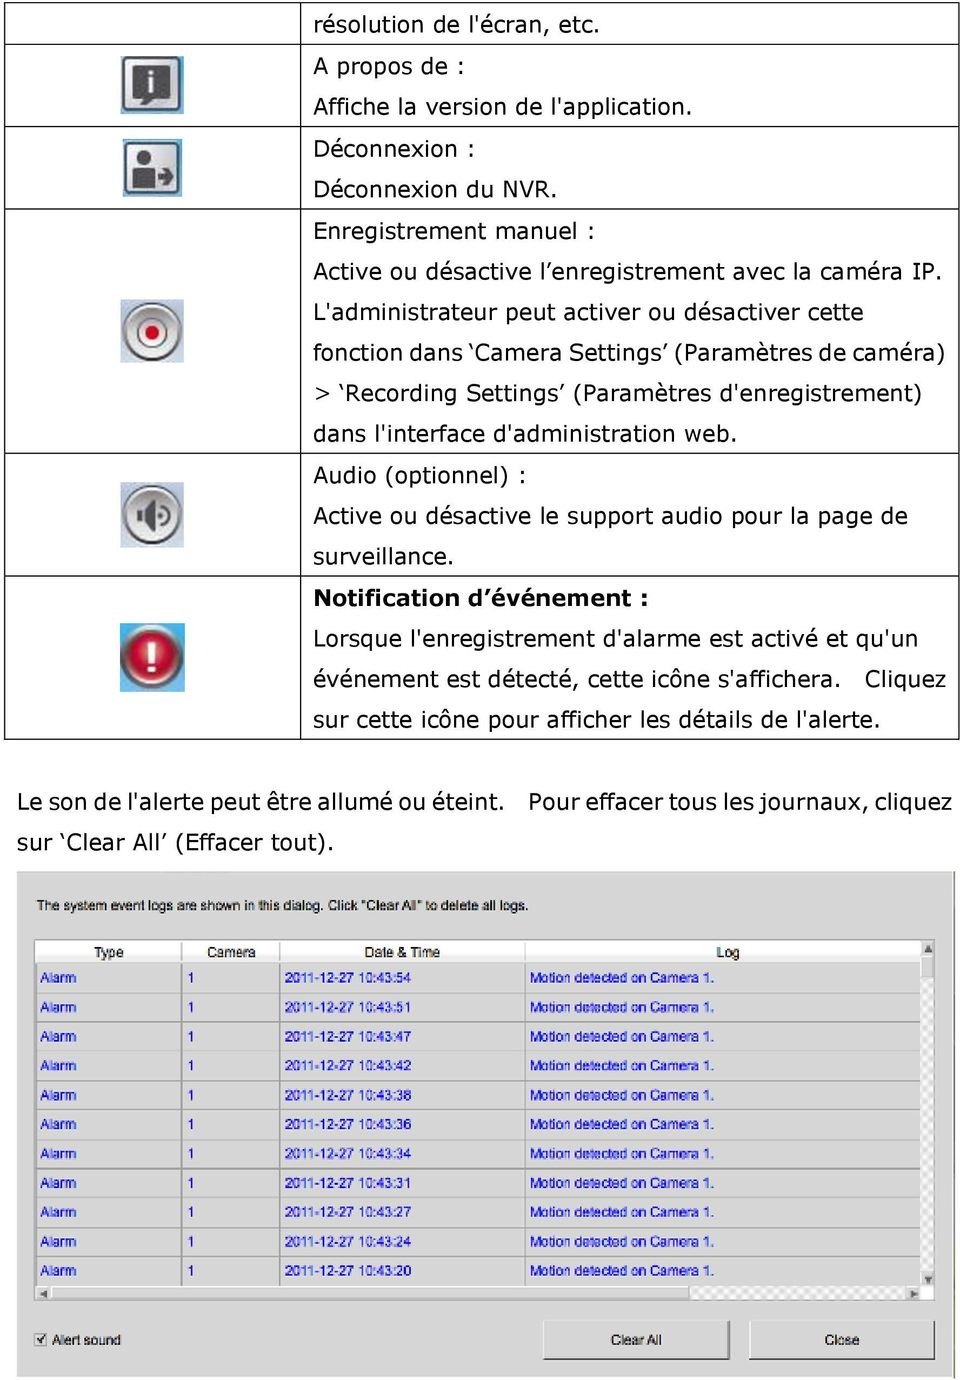 Audio (optionnel) : Active ou désactive le support audio pour la page de surveillance.